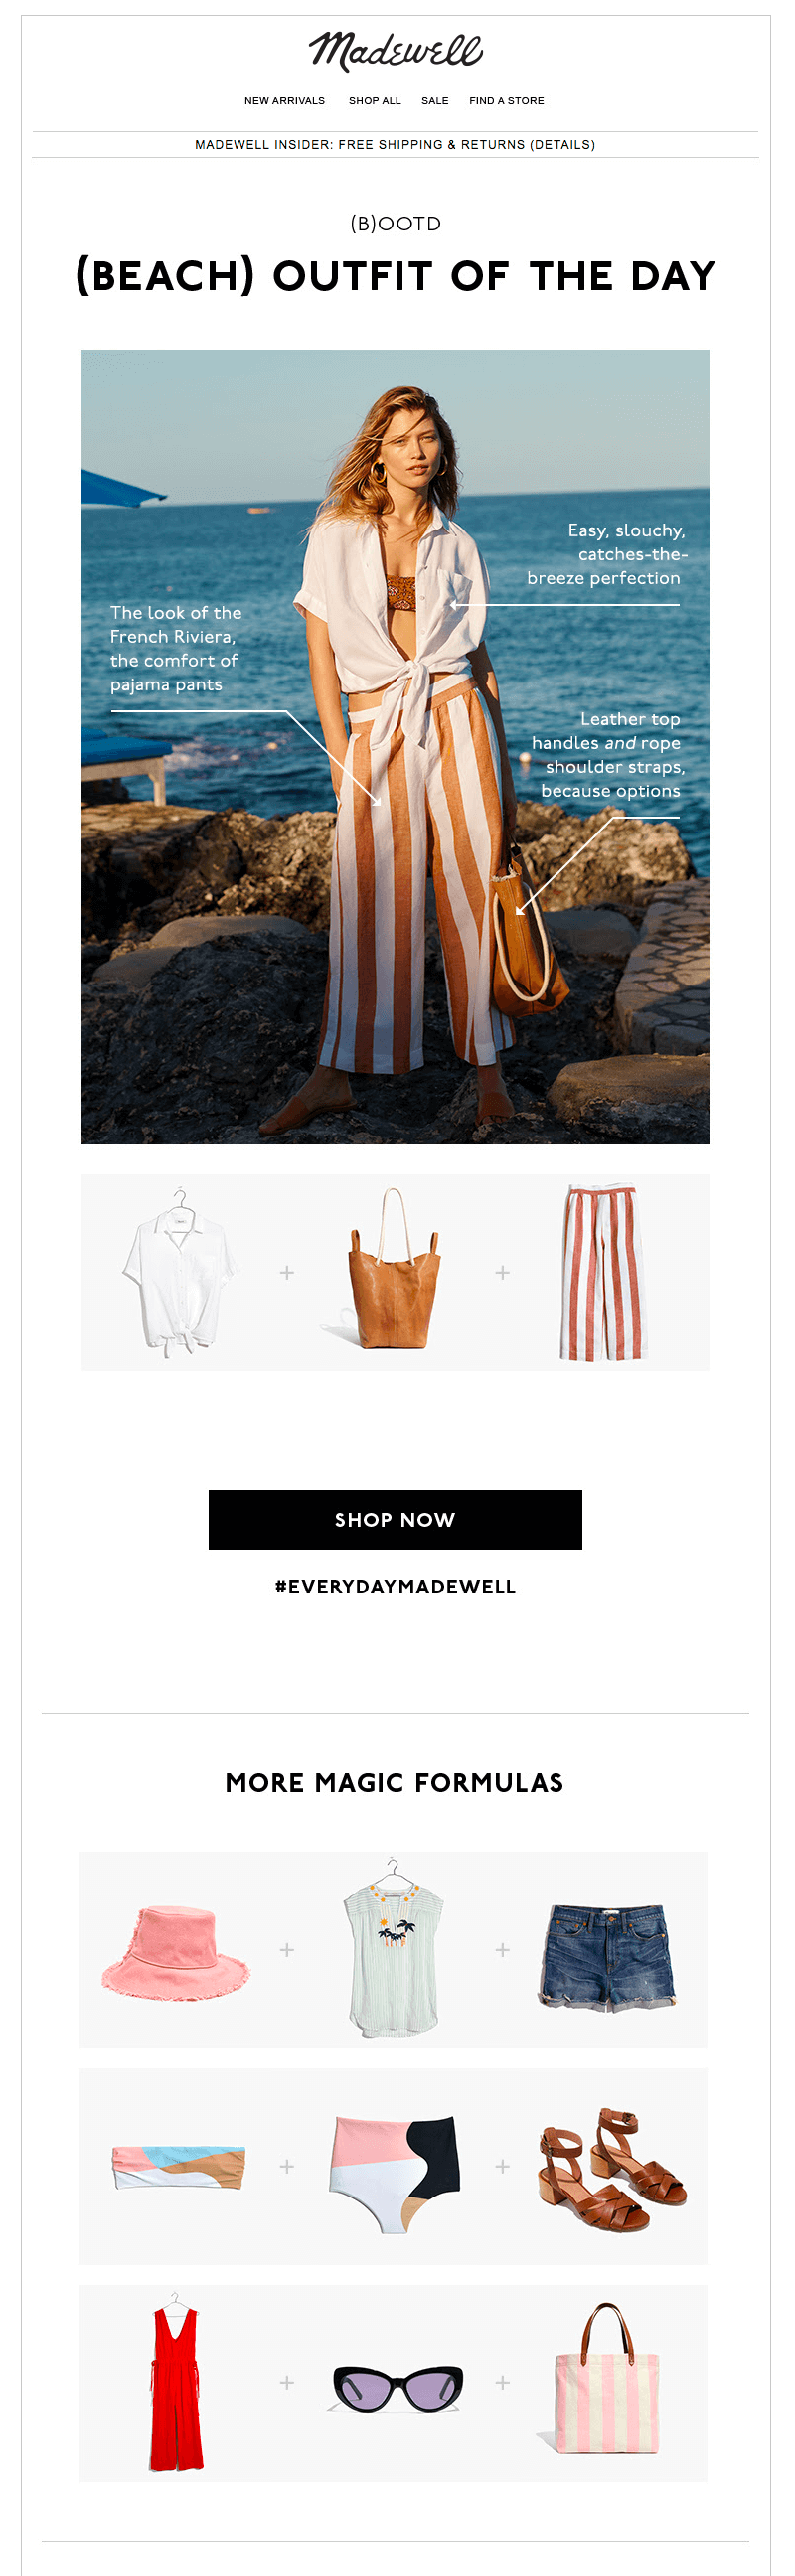 Madewell vacation emails